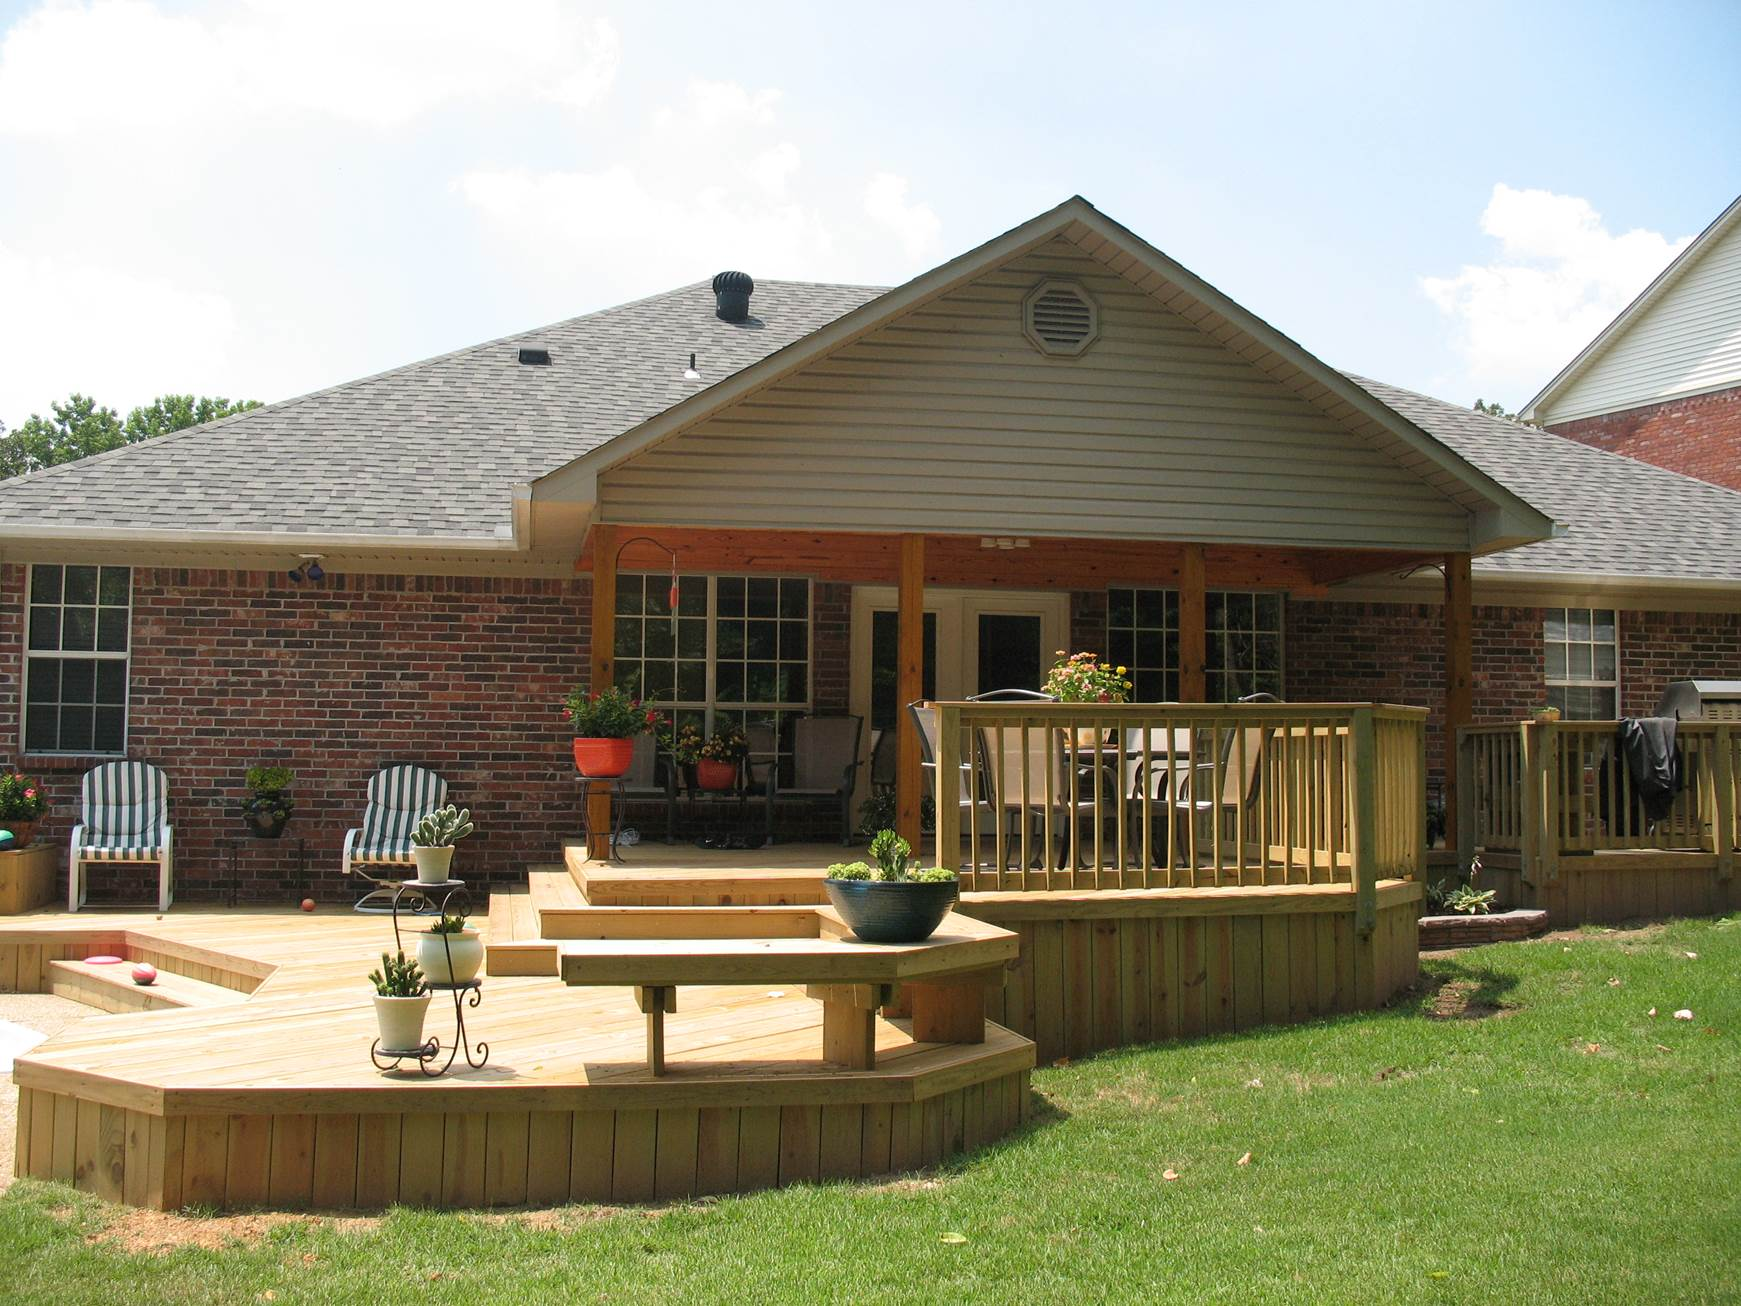 Multi Level Backyard Decks : MultiLevel Deck Opens Up Yard in Arkansas